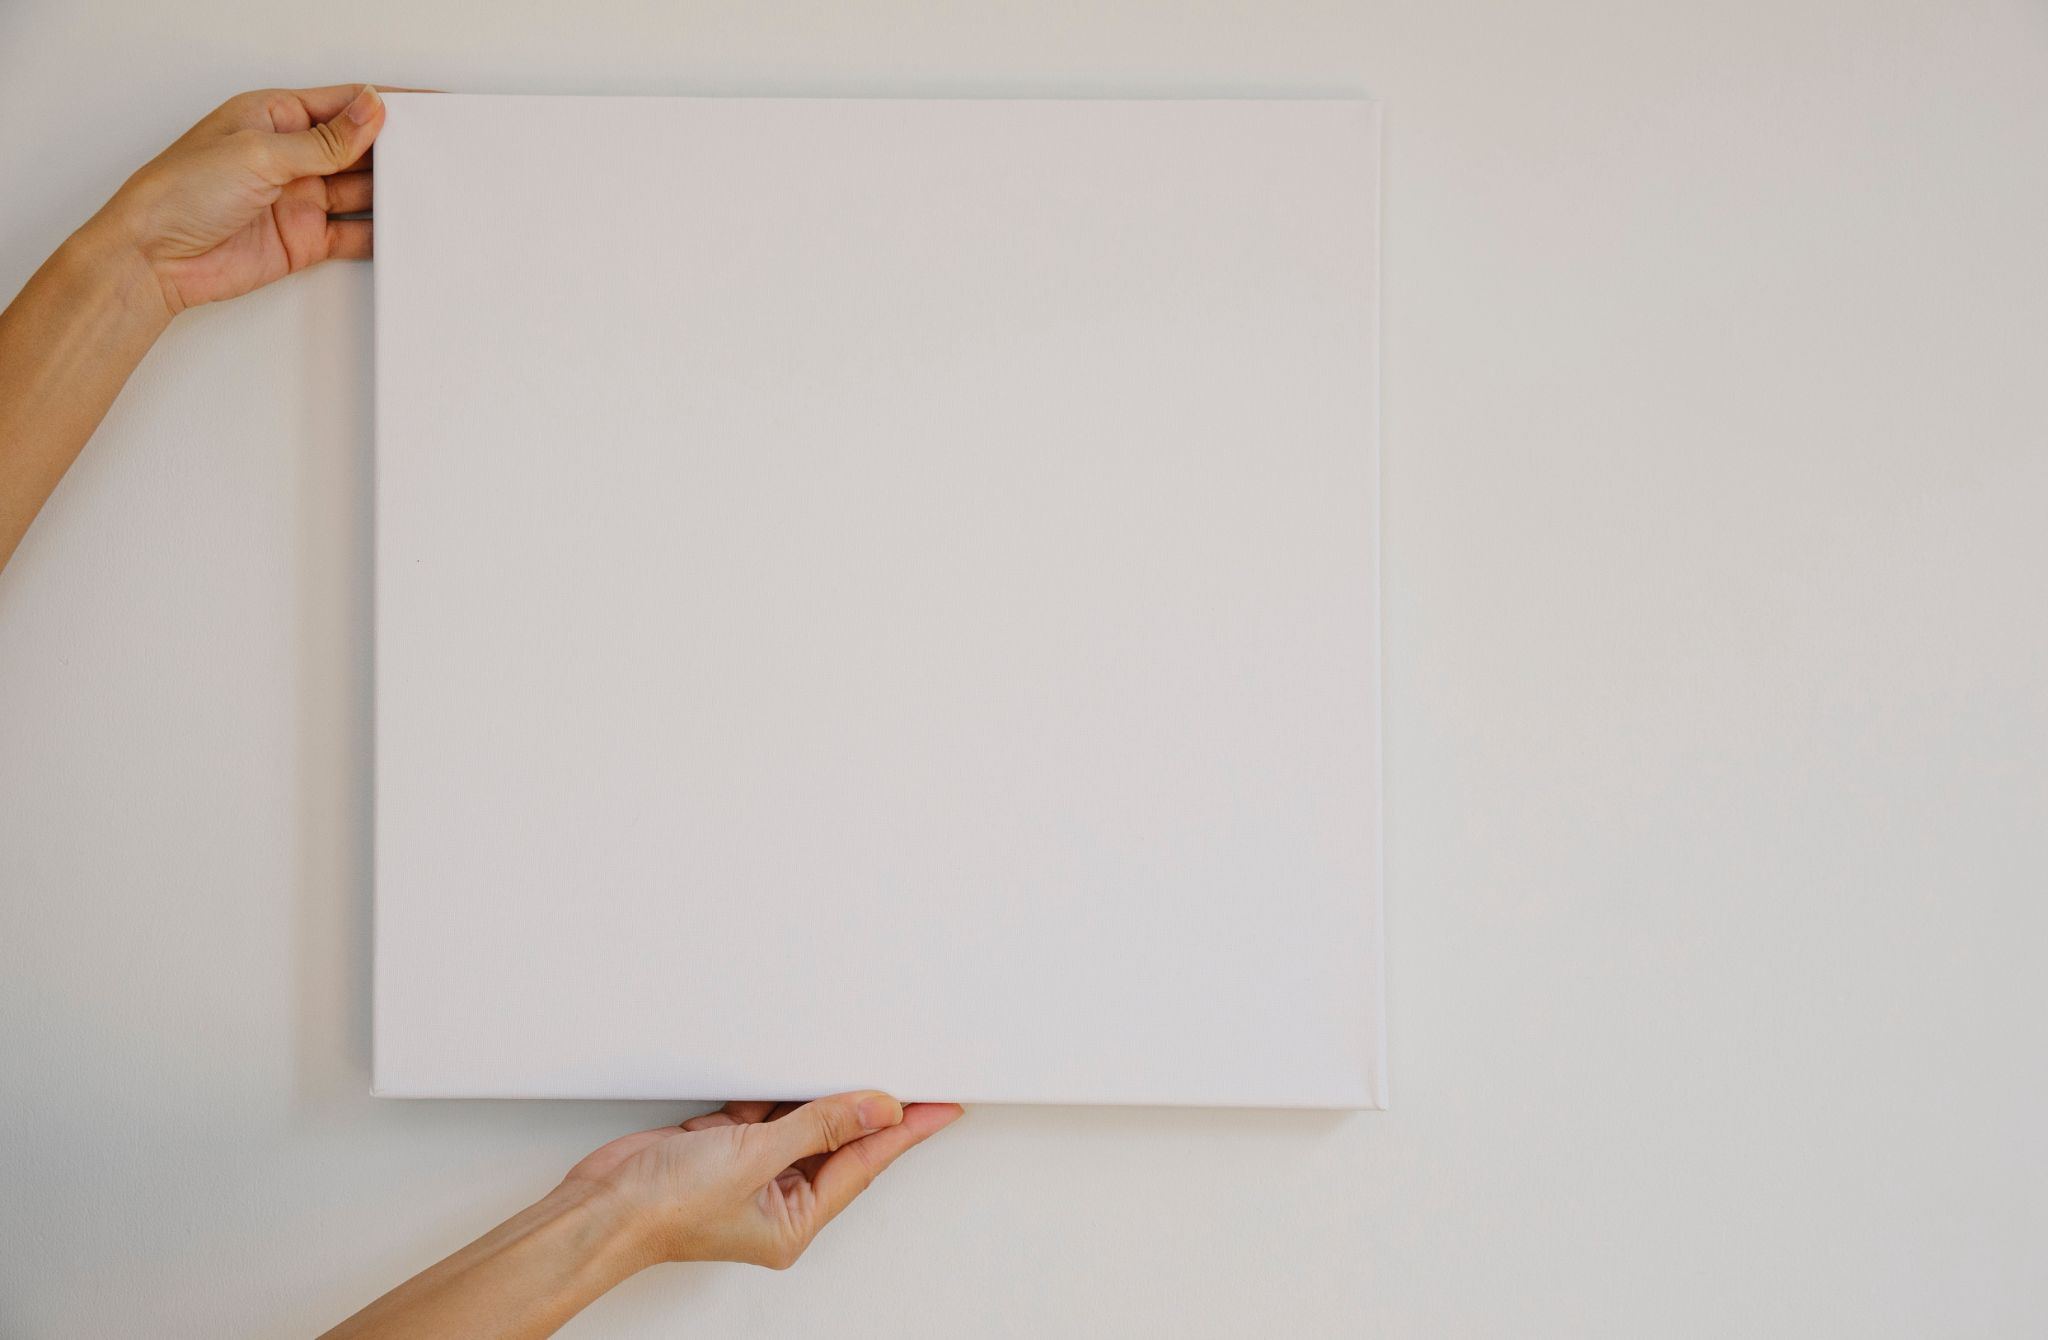 blank canvas being held against a white wall